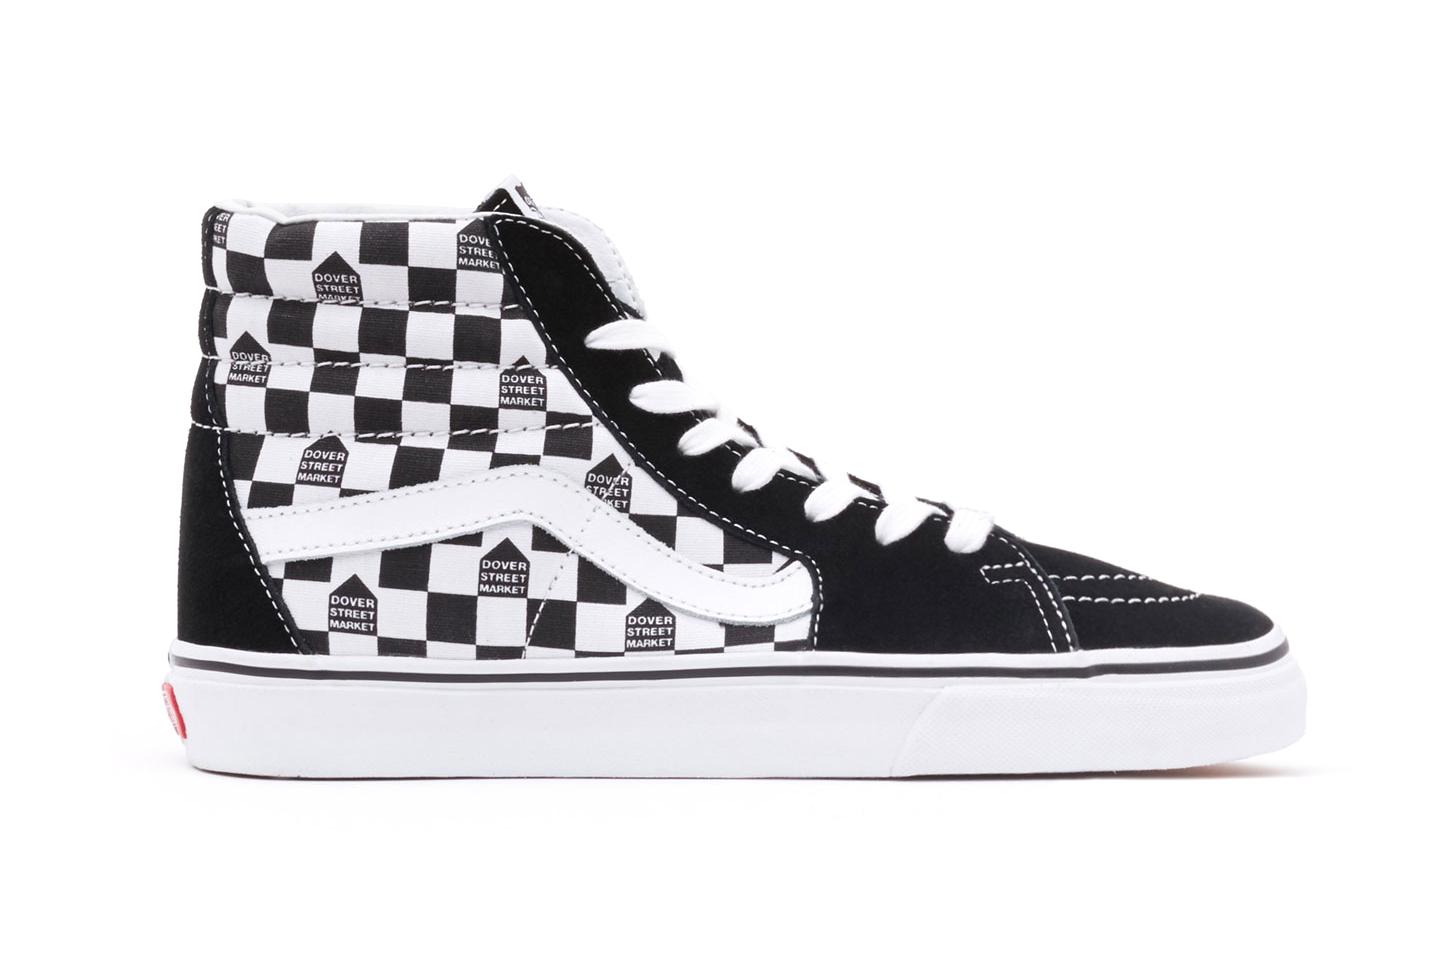 Vans Releases New Colorways for Dover Street Market's New London Location